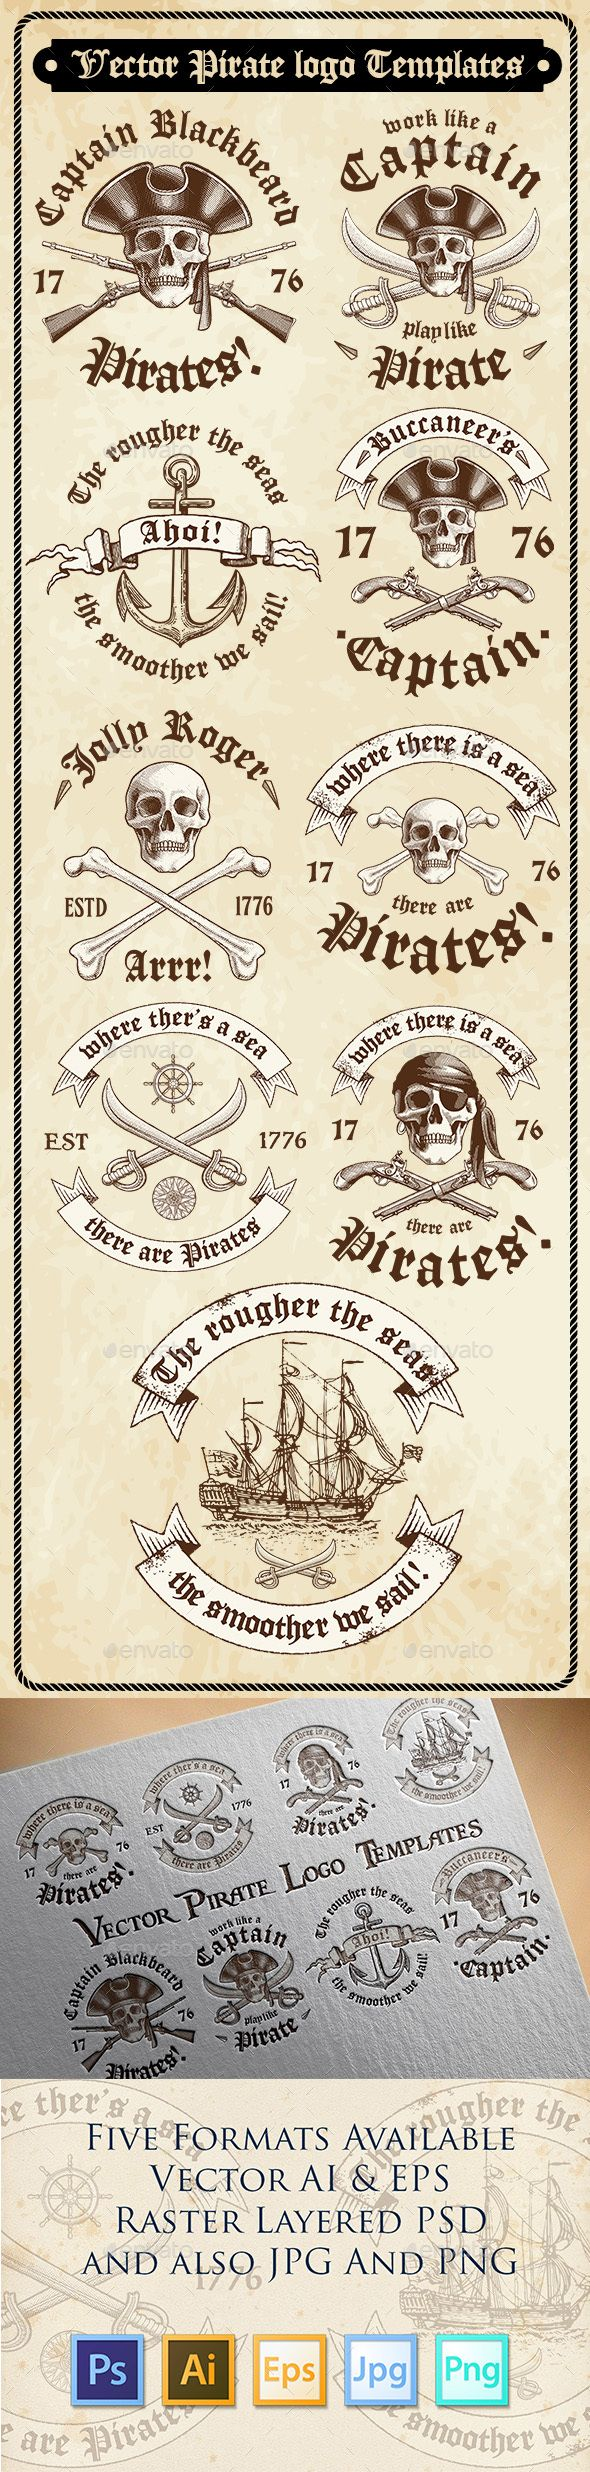 best 25 pirate template ideas on pinterest pirate images